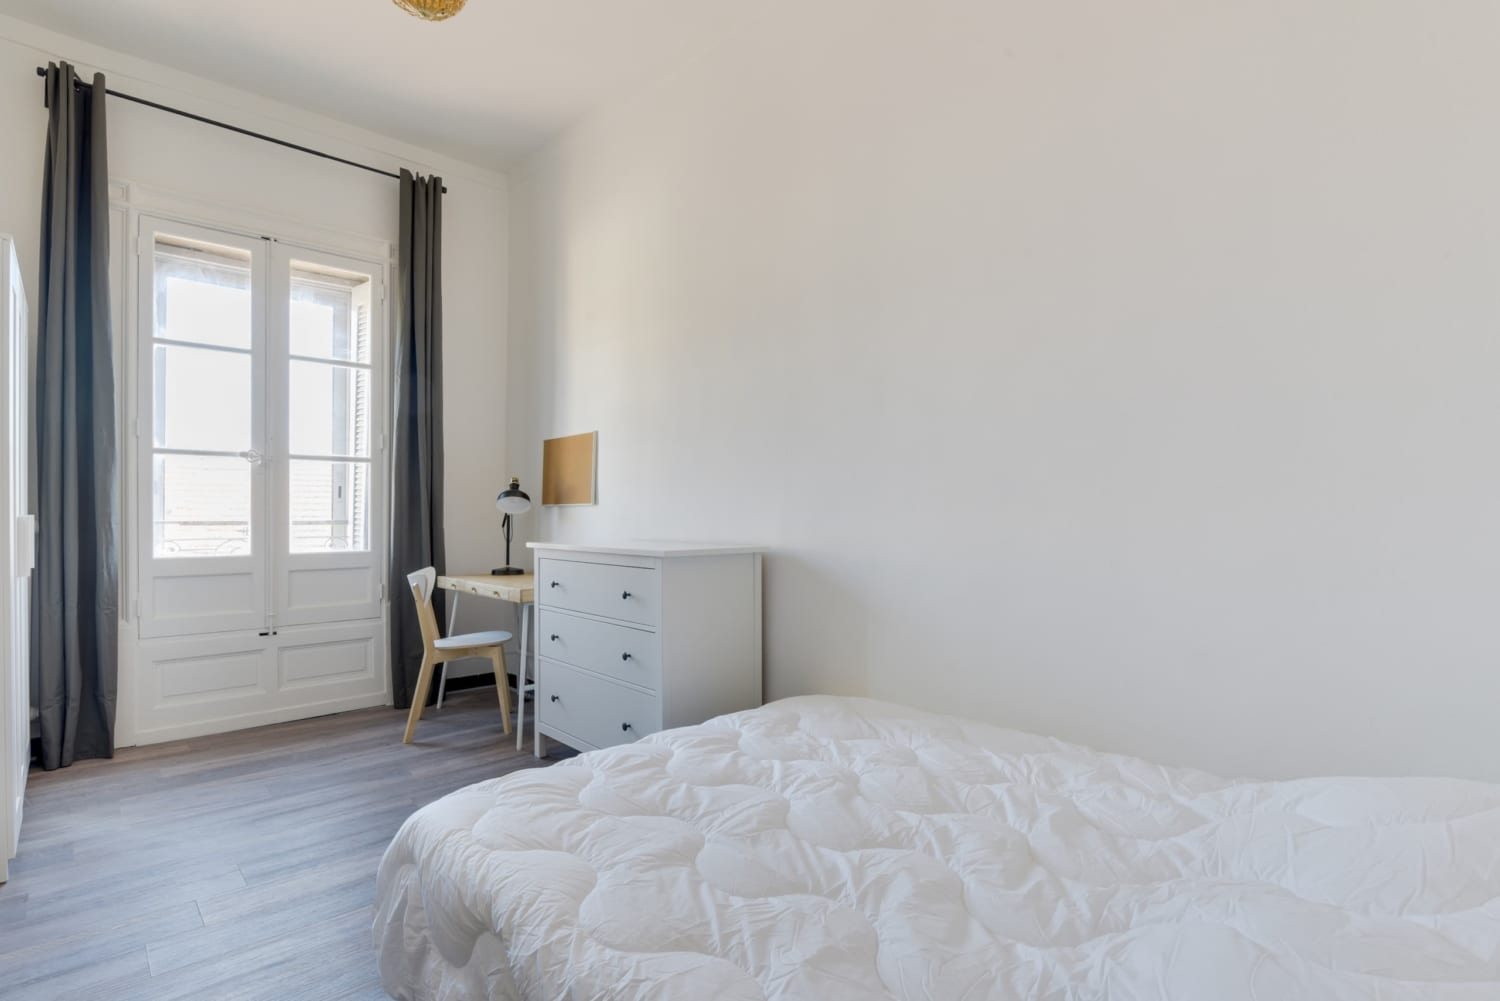 Fully equipped room in a shared apartment in Montpellier